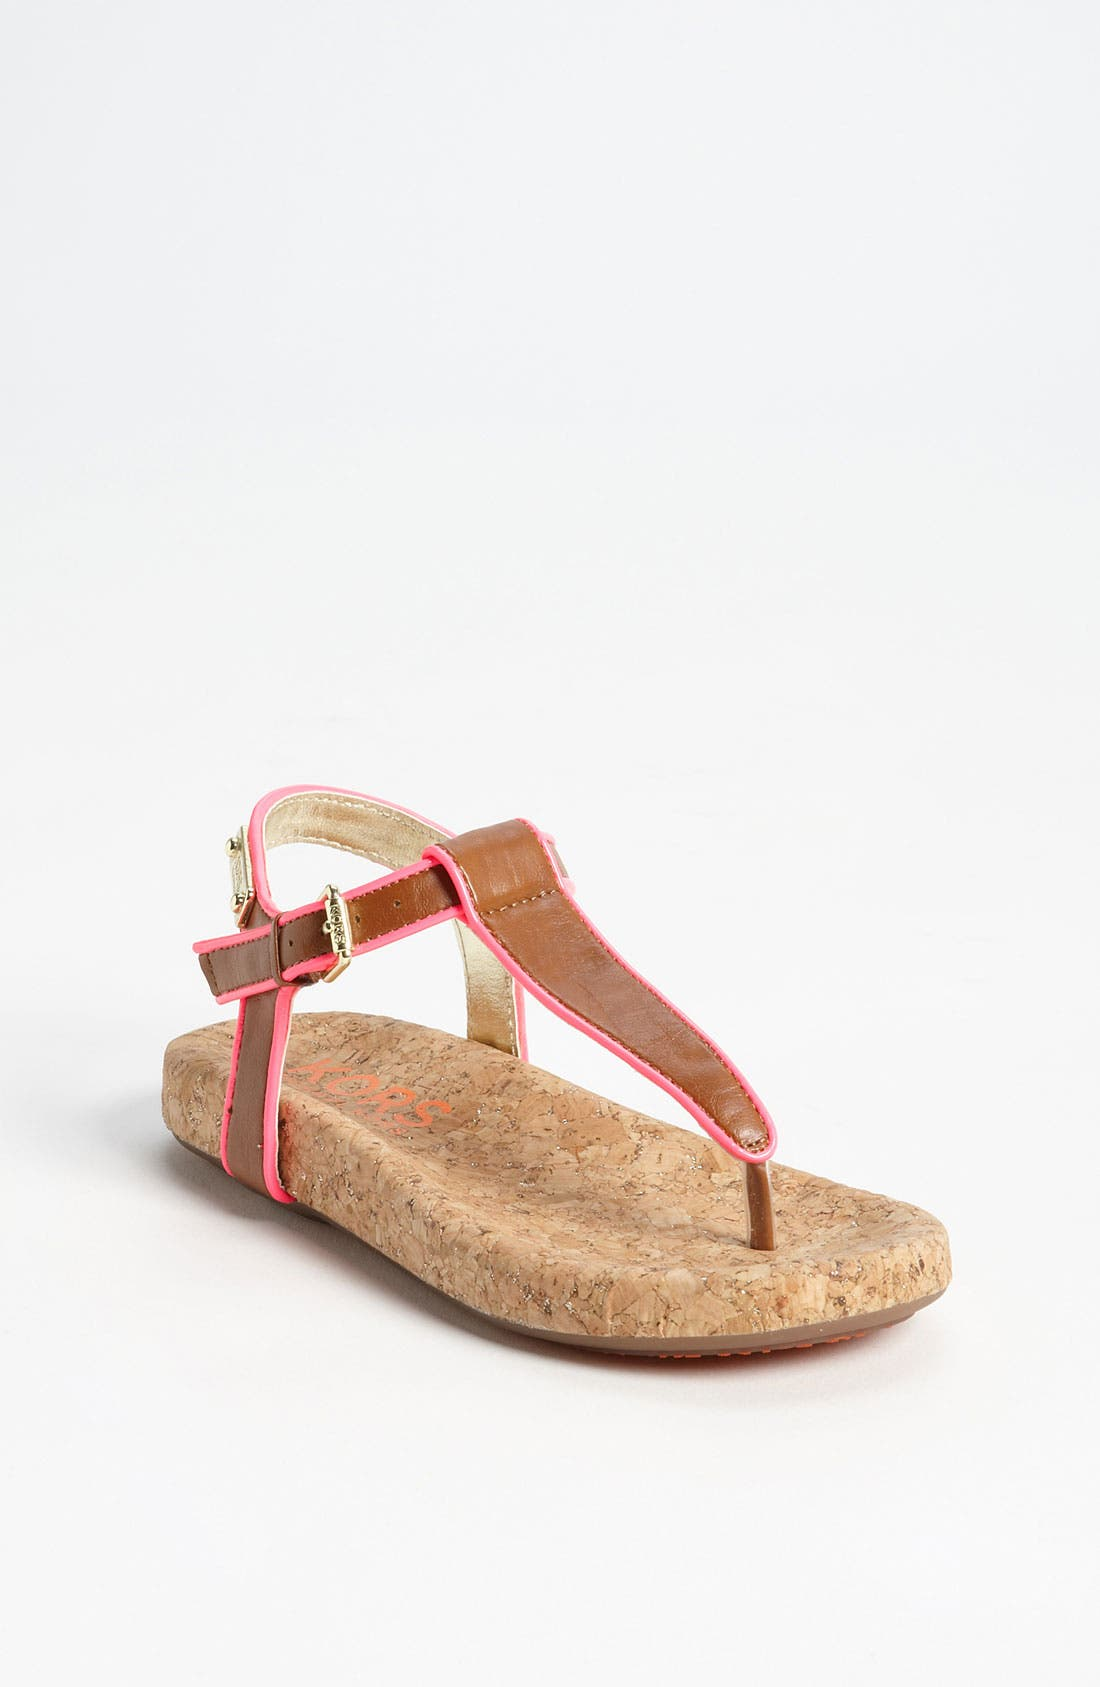 Alternate Image 1 Selected - KORS Michael Kors 'Moonlight' Sandal (Toddler, Little Kid & Big Kid)